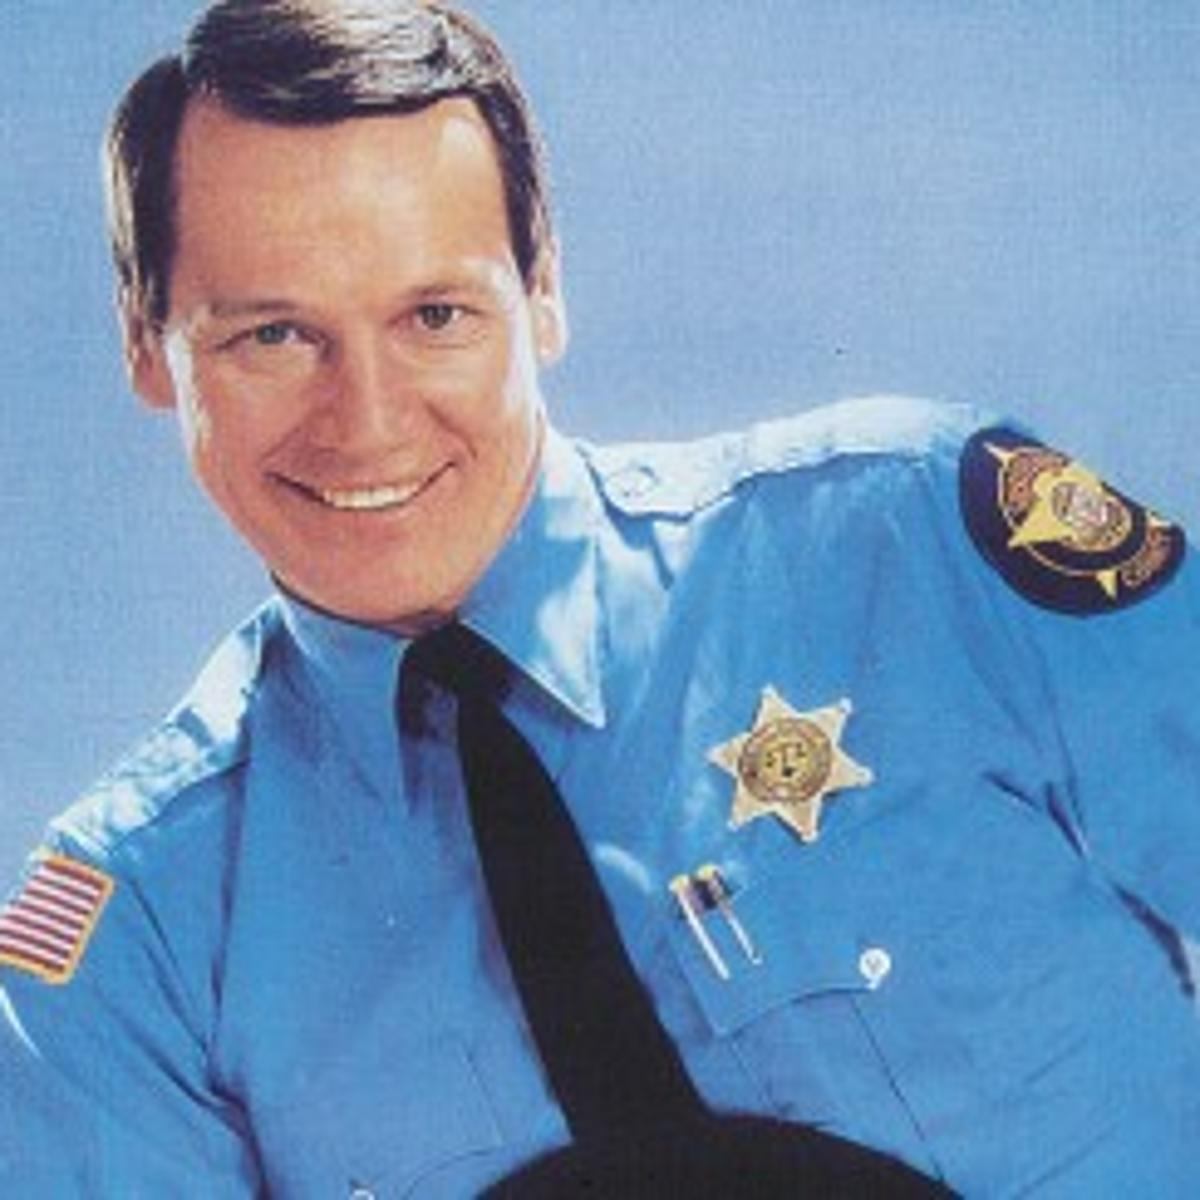 Dukes Of Hazzard Deputy Coming To East Moline Fun And Entertainment Qctimes Com Listen to music from sonny shroyer like you can't roller skate in a buffalo herd. hazzard deputy coming to east moline